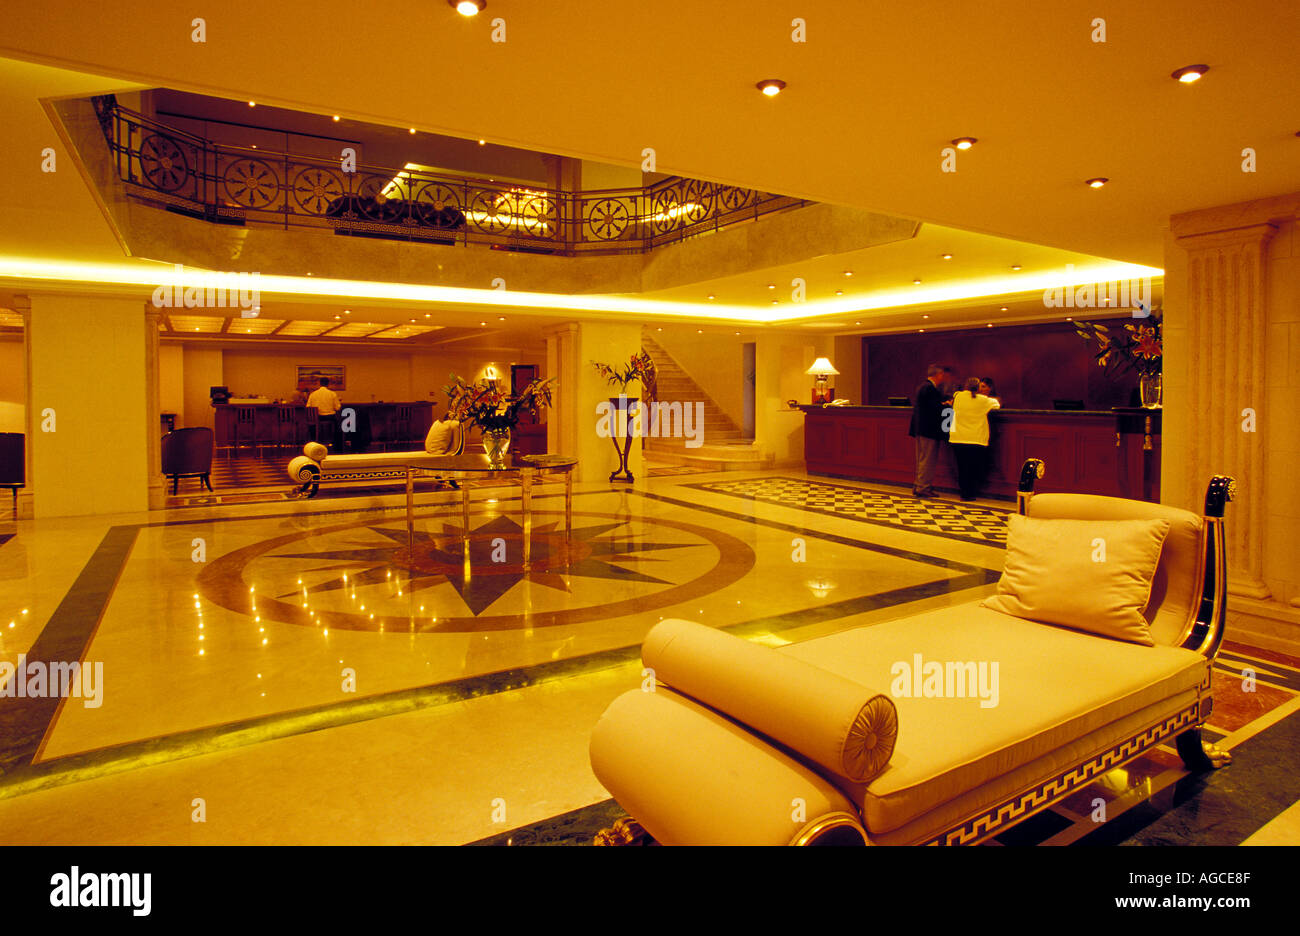 Best On Electra Palace Hotel Athens In Reviews